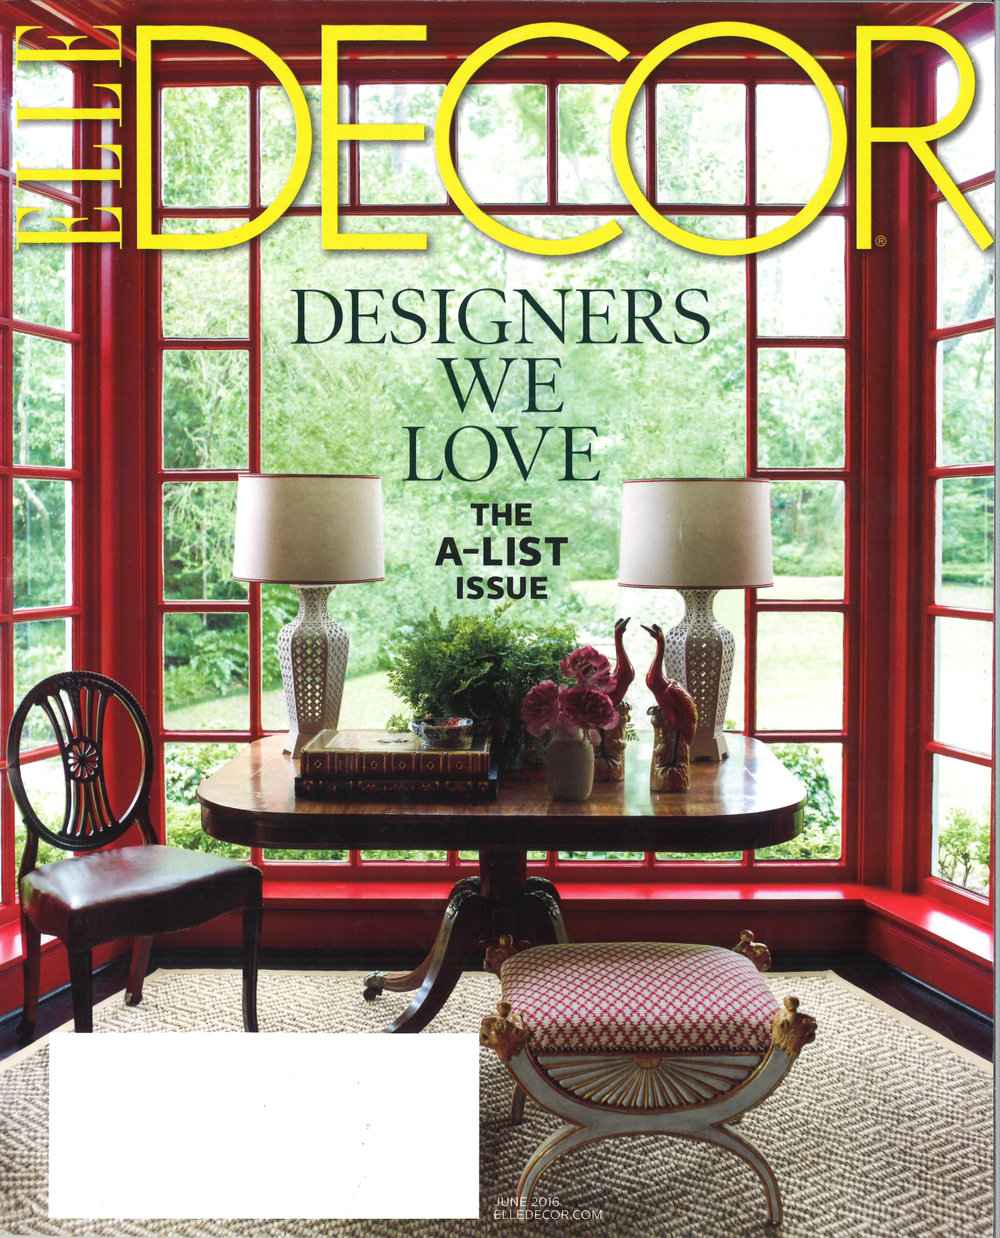 Elle Decor June 2016.jpg